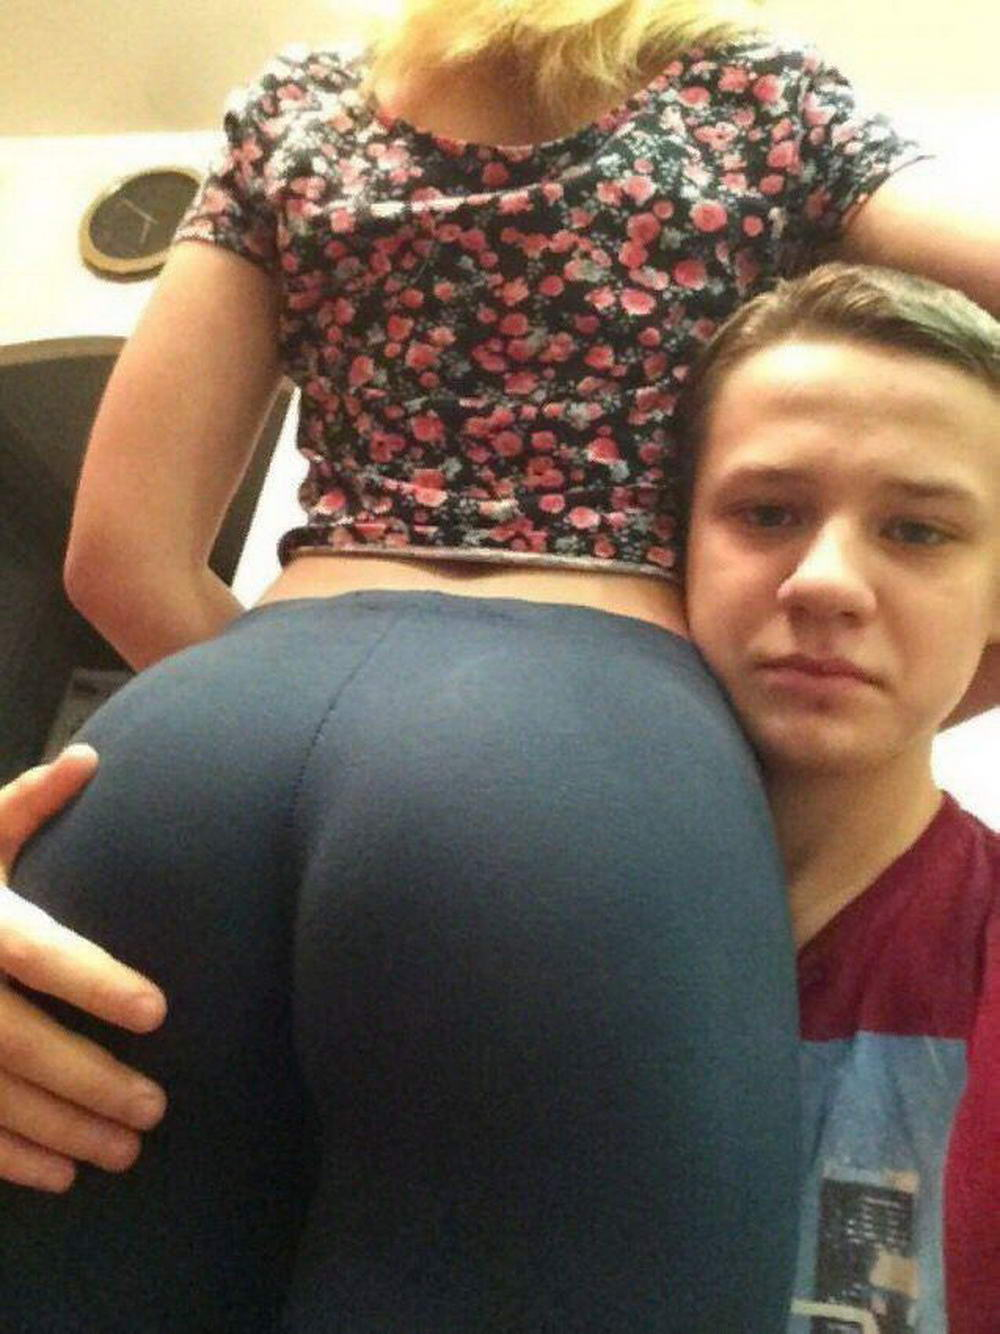 Most Embarrassing Moments Caught On Camera (36 Photos)